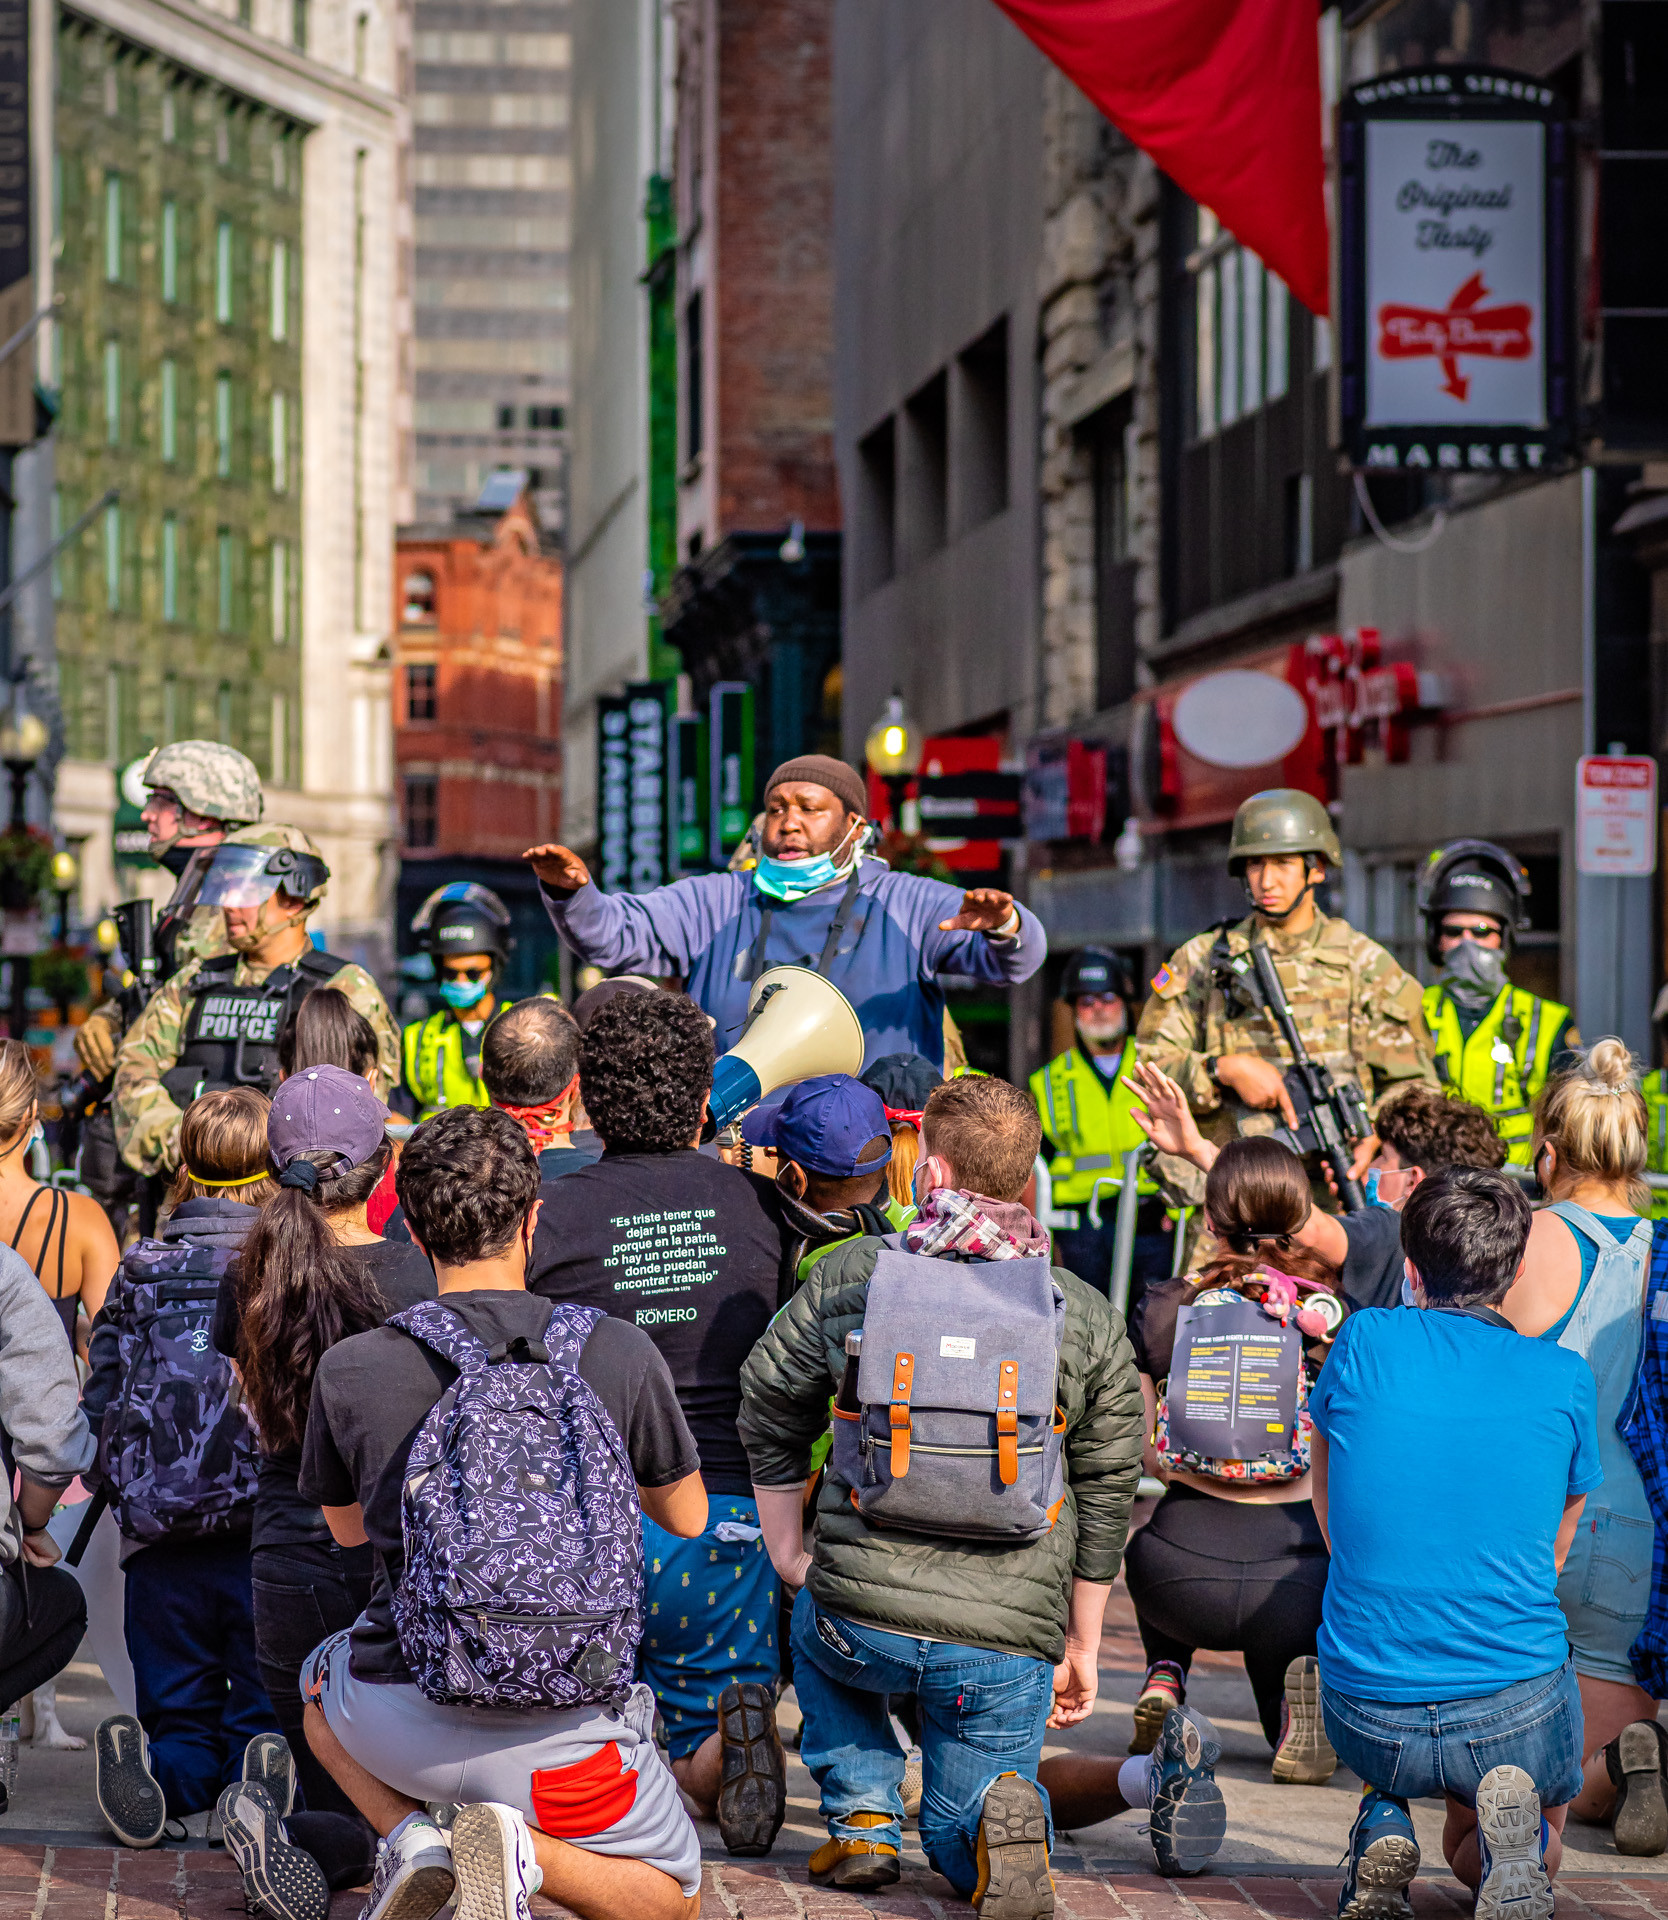 This was an appeal to the Military police to kneel along with the protesters. They did not. One of the MP's was a photographer. Shooting for military publications, or for...?